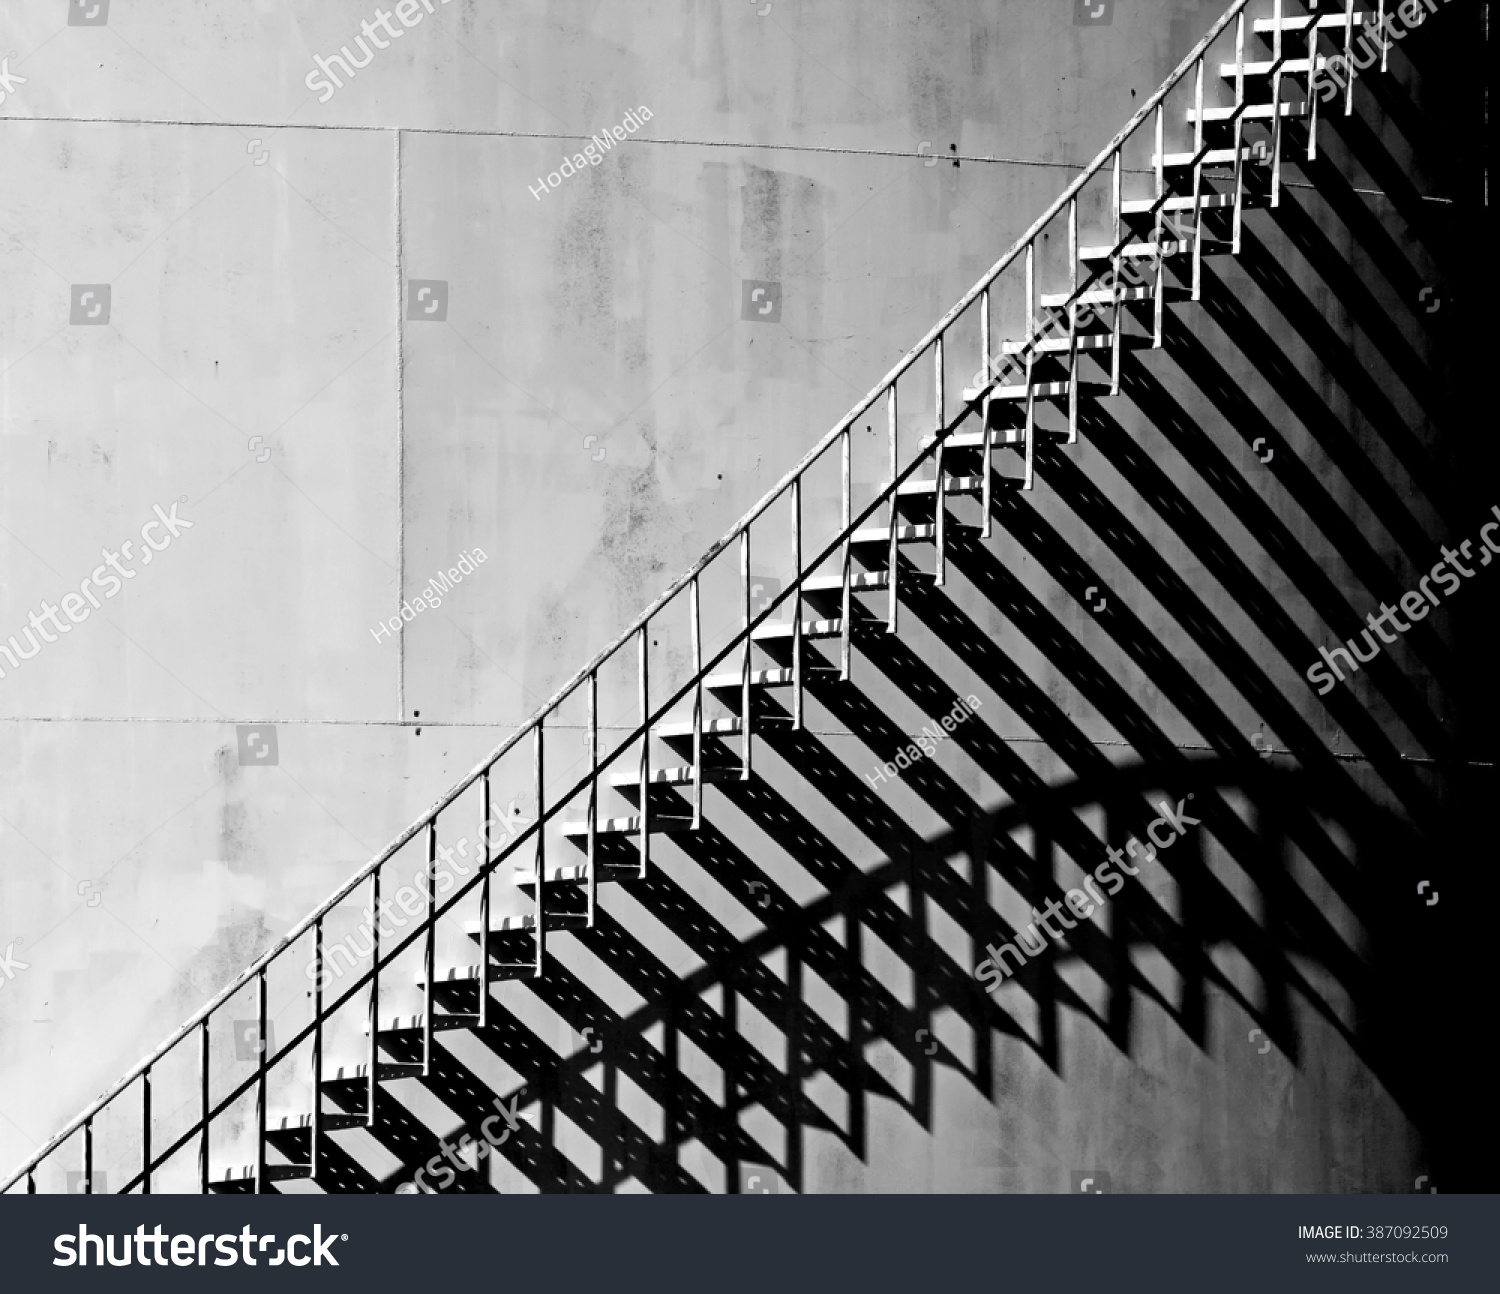 Stairway shadow photo